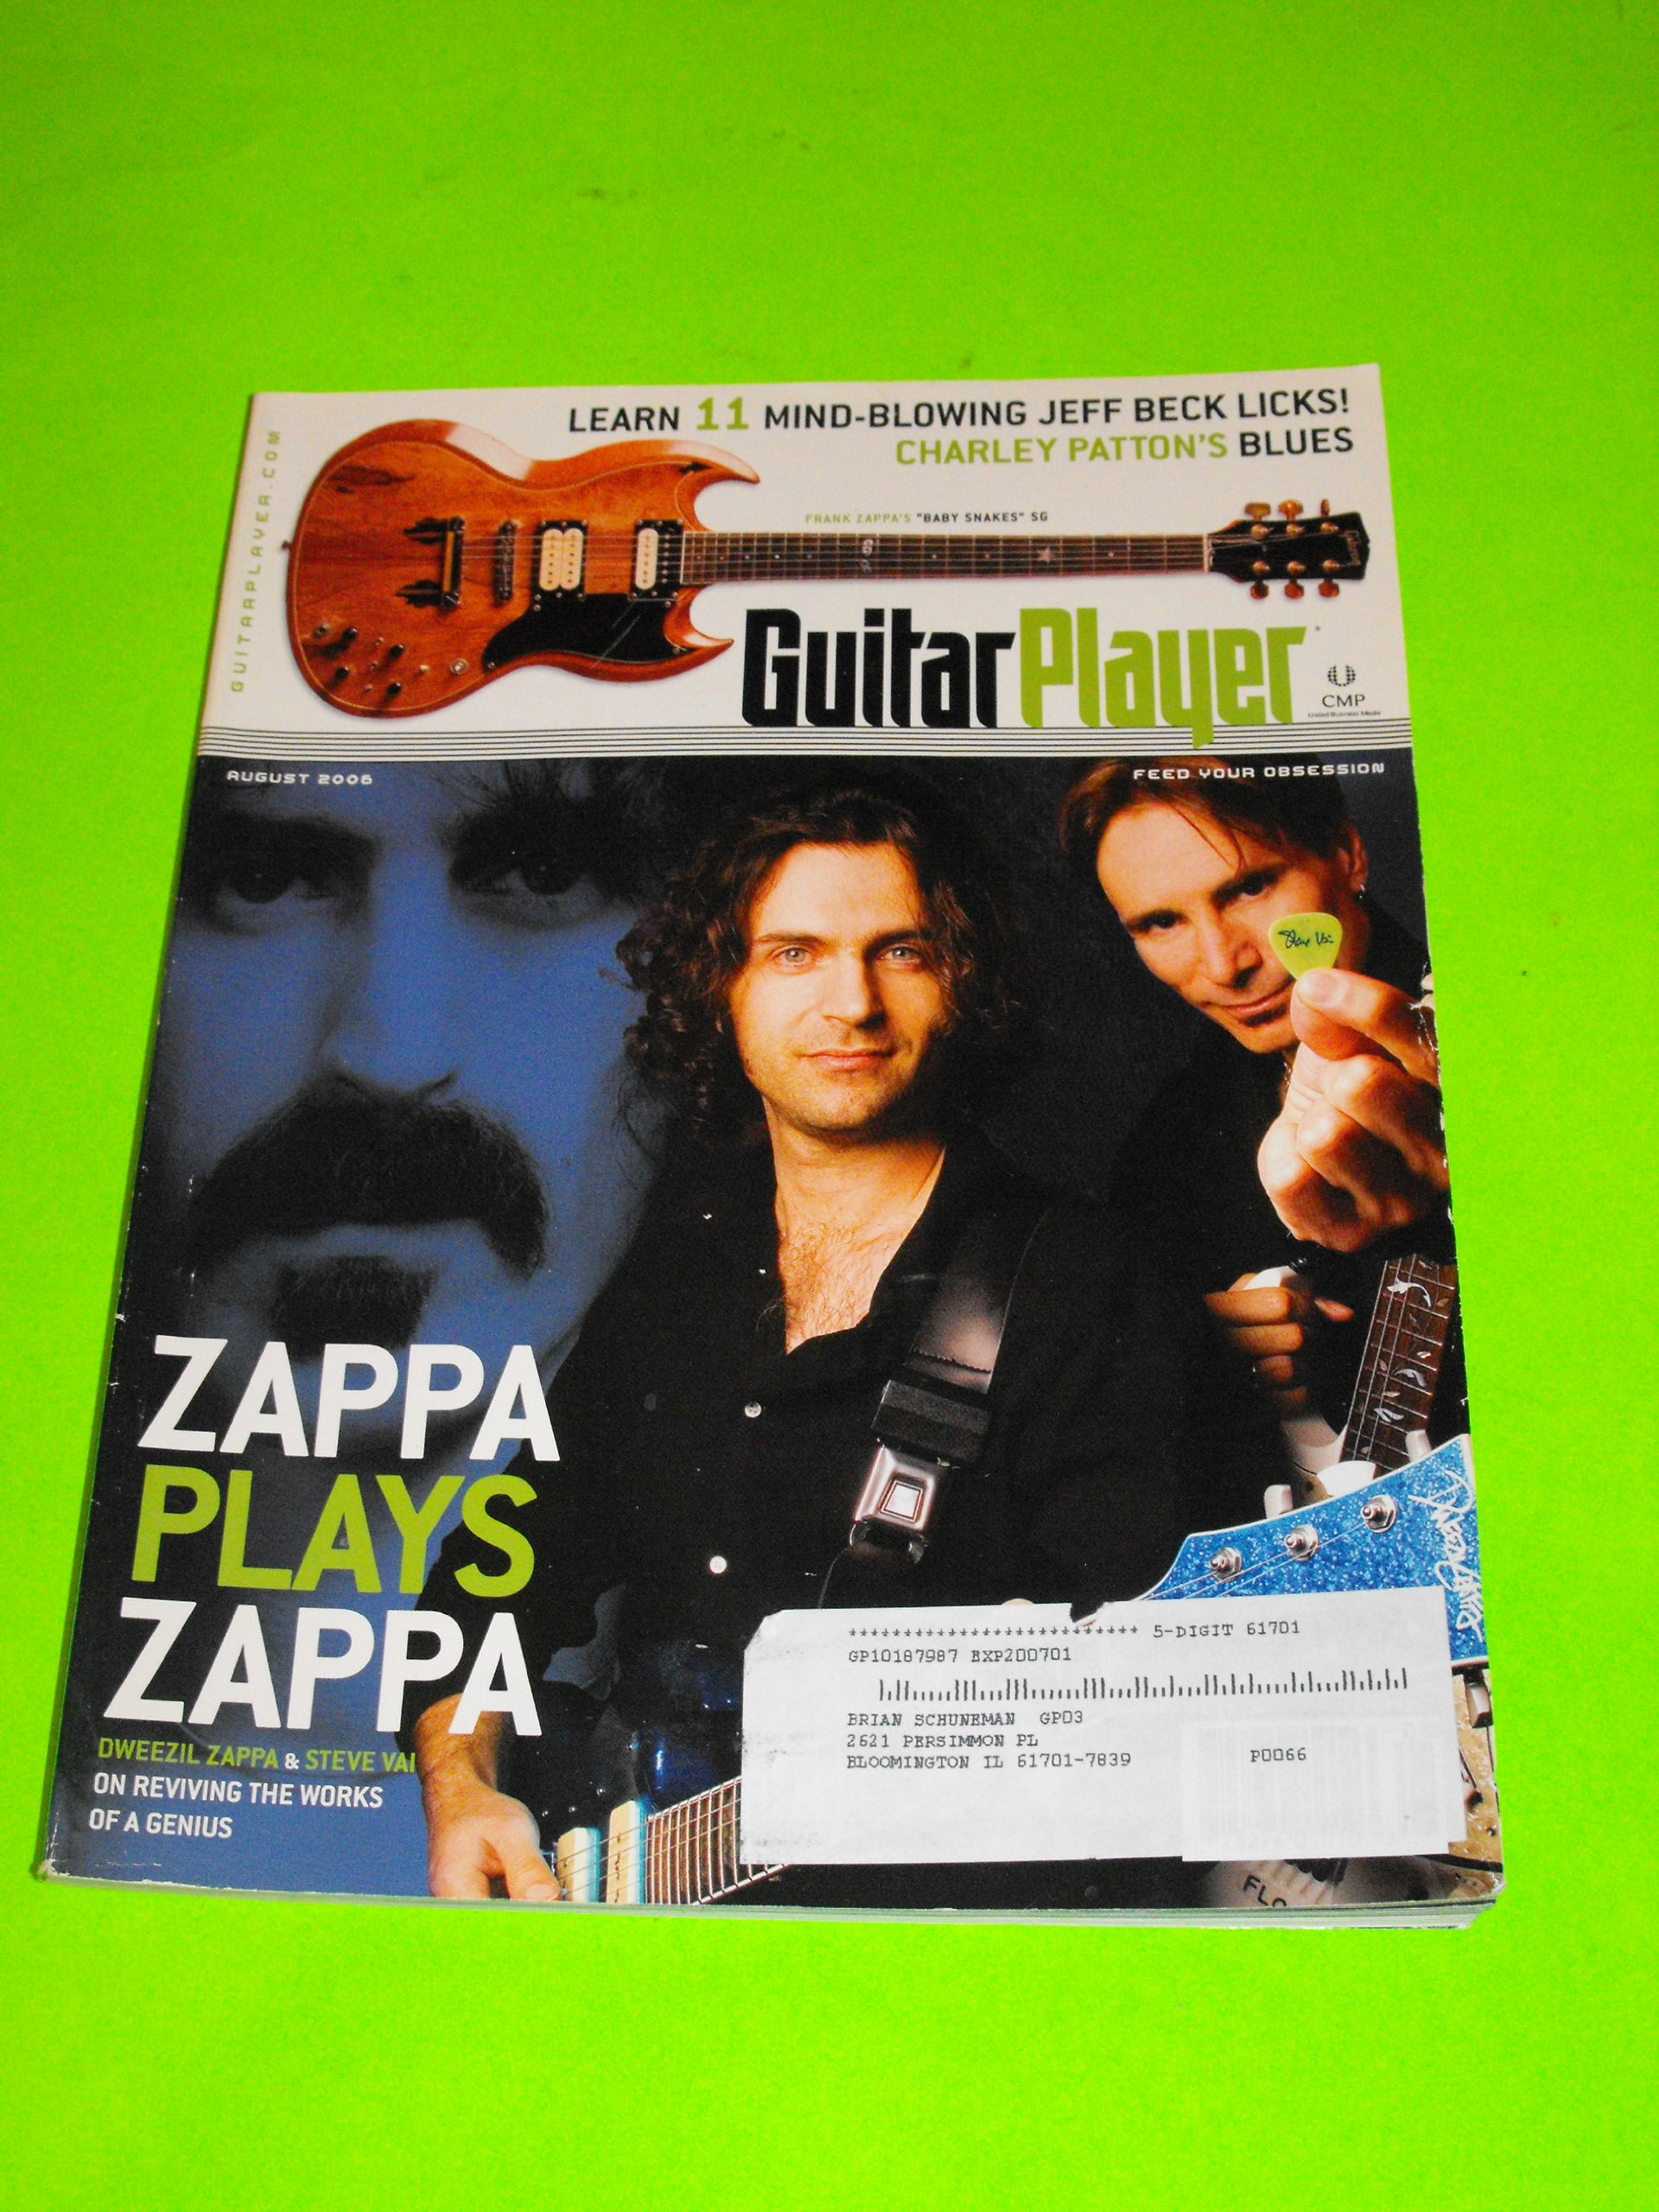 Dweezil Zappa & Steve Vai (Cover), Jeff Beck Licks, Charley Patton's blues (Guitar Player Magazine - August 2006) ebook